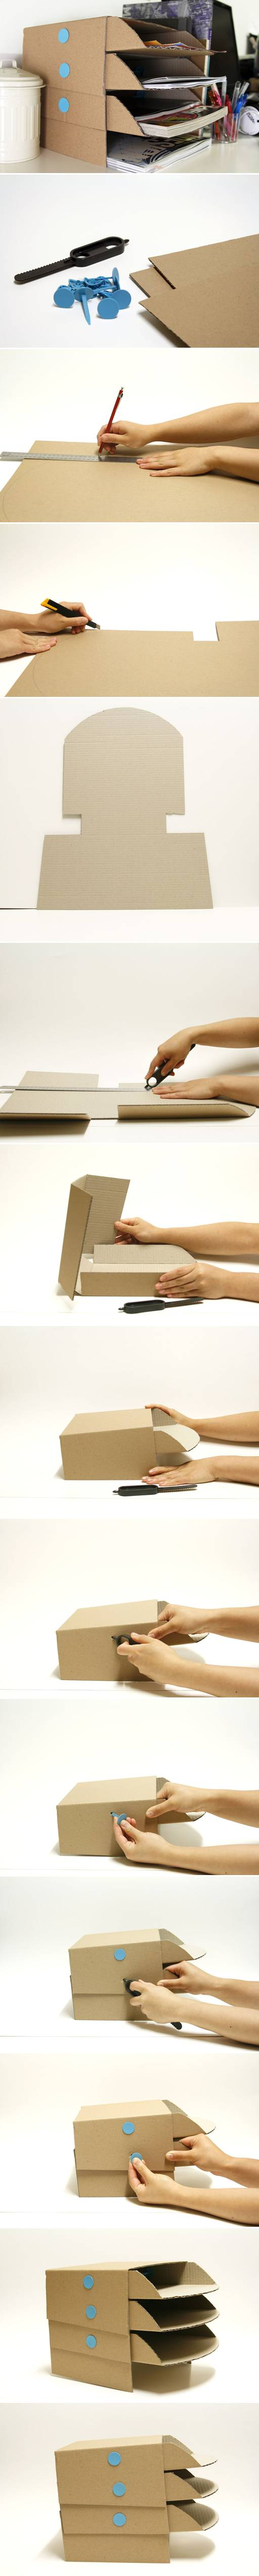 How to make Cardboard office Desktop storage Trays step by step DIY tutorial instructions